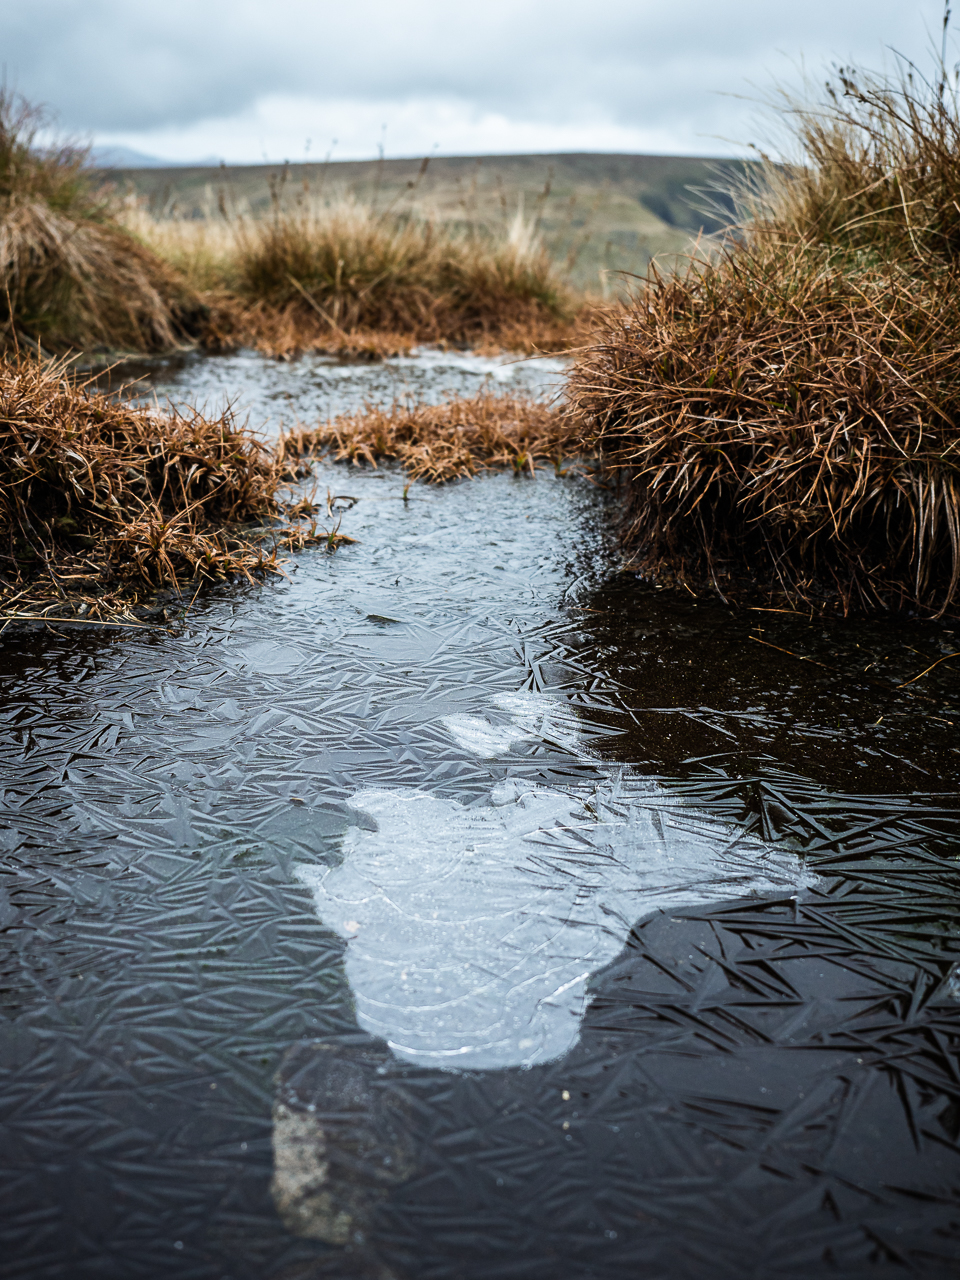 A frozen pond near Harter Fell, in the Lake District, Cumbria, England.